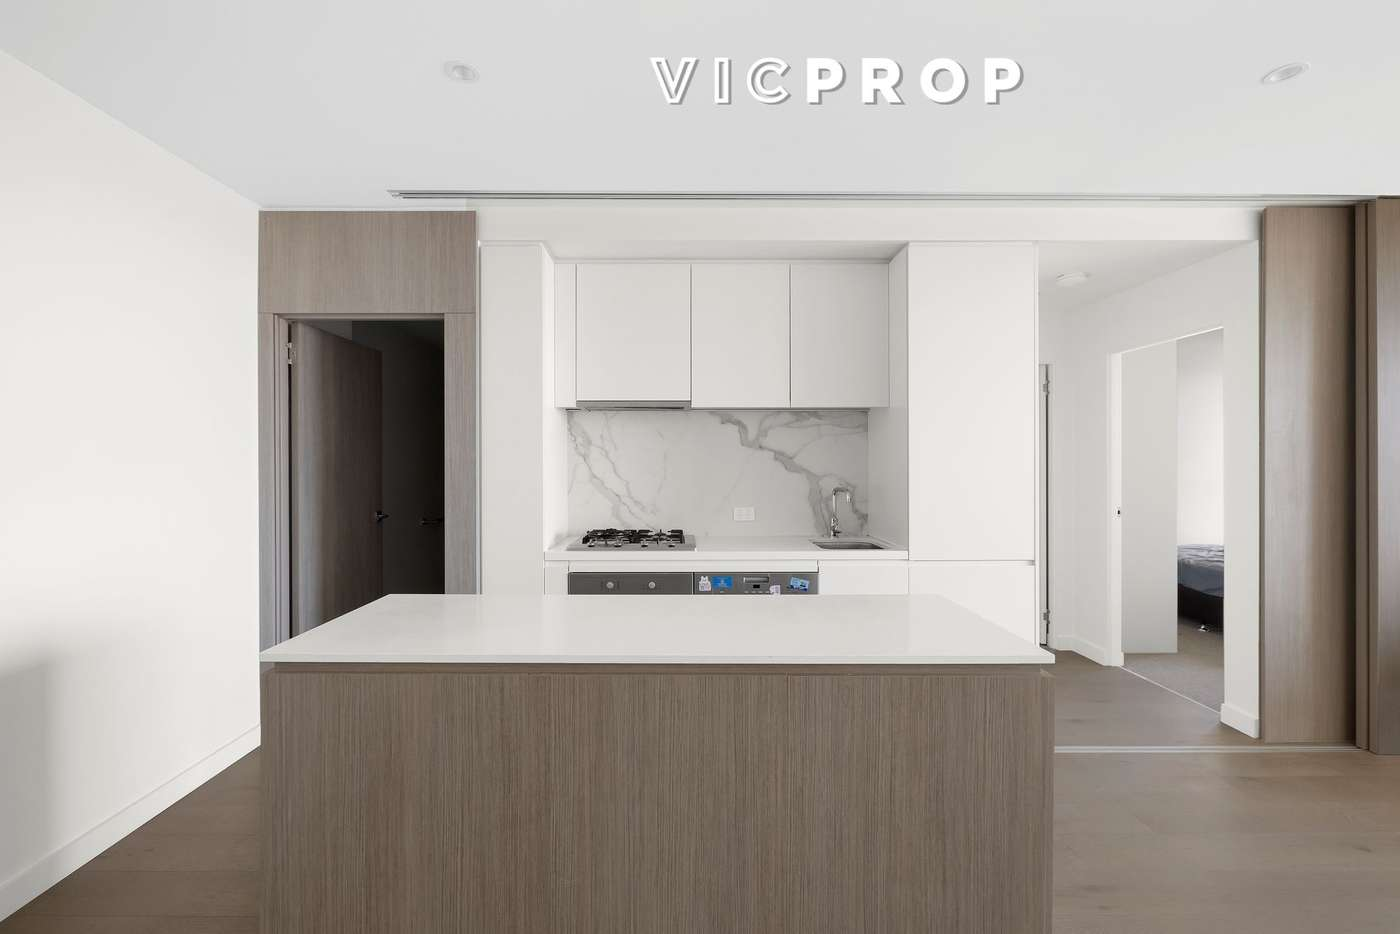 Main view of Homely apartment listing, 509/5 Elgar Court, Doncaster VIC 3108